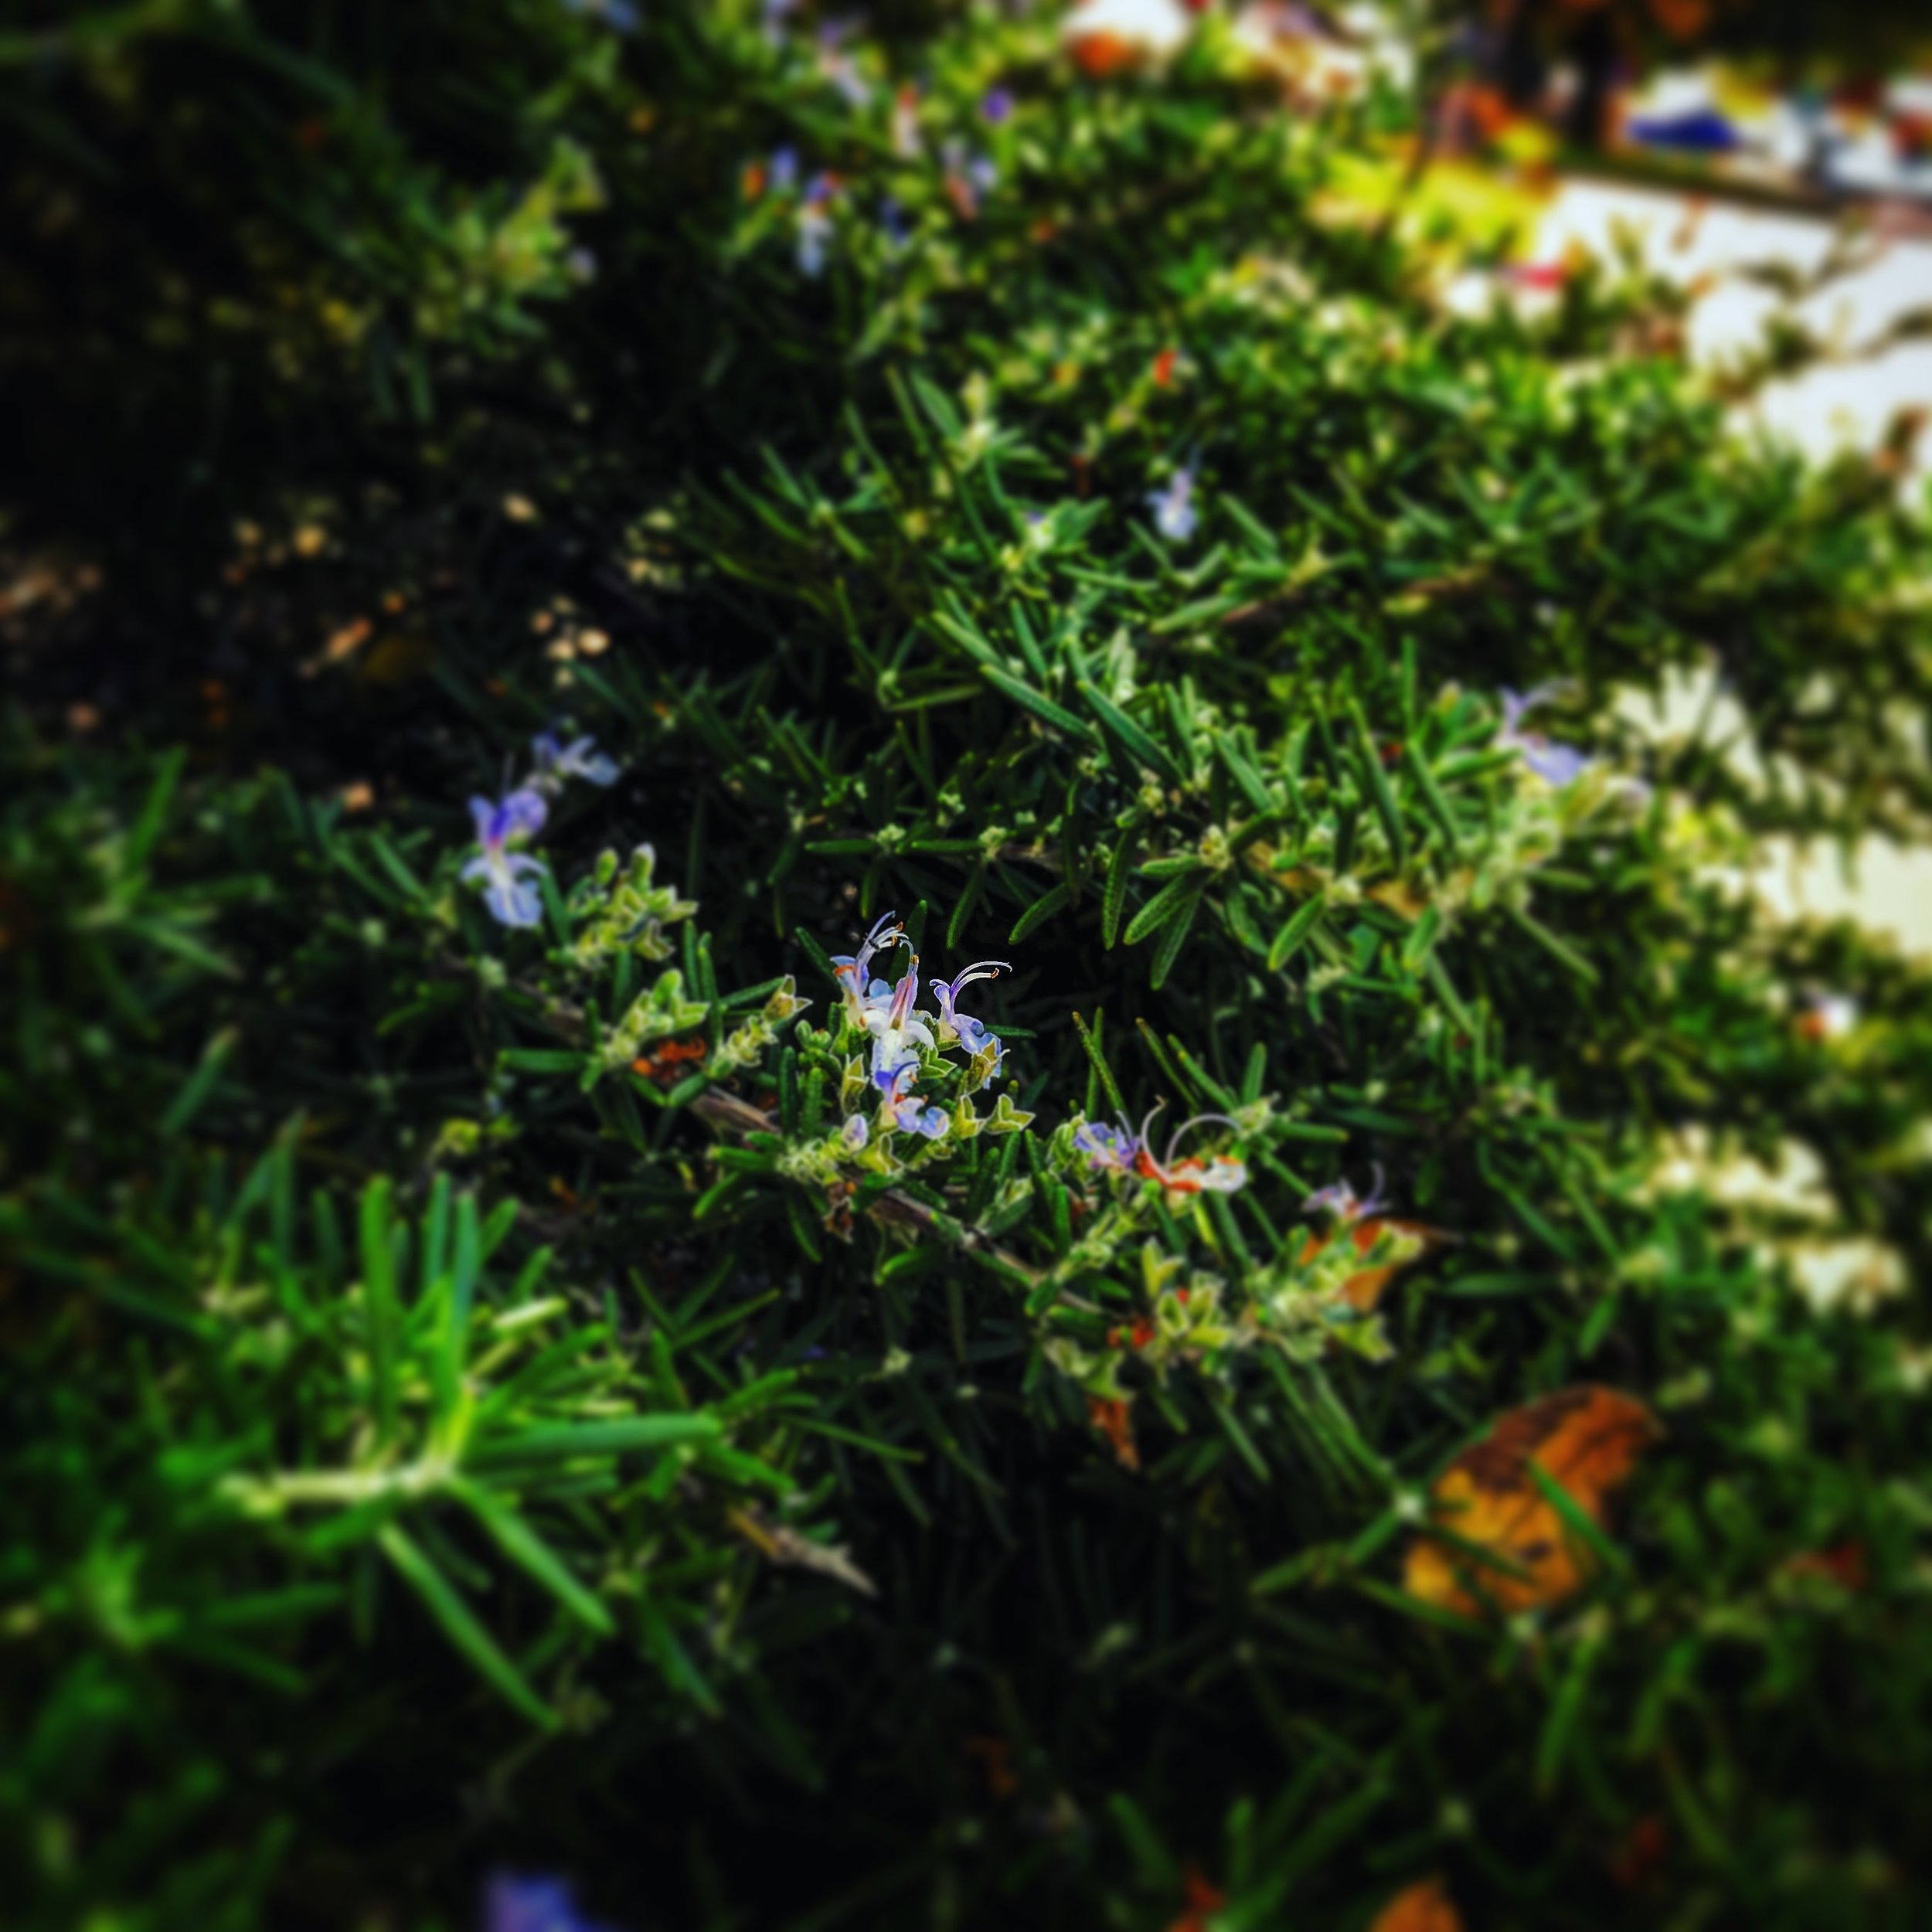 Rosemary was on every single street we walked down. The scent was invigorating.